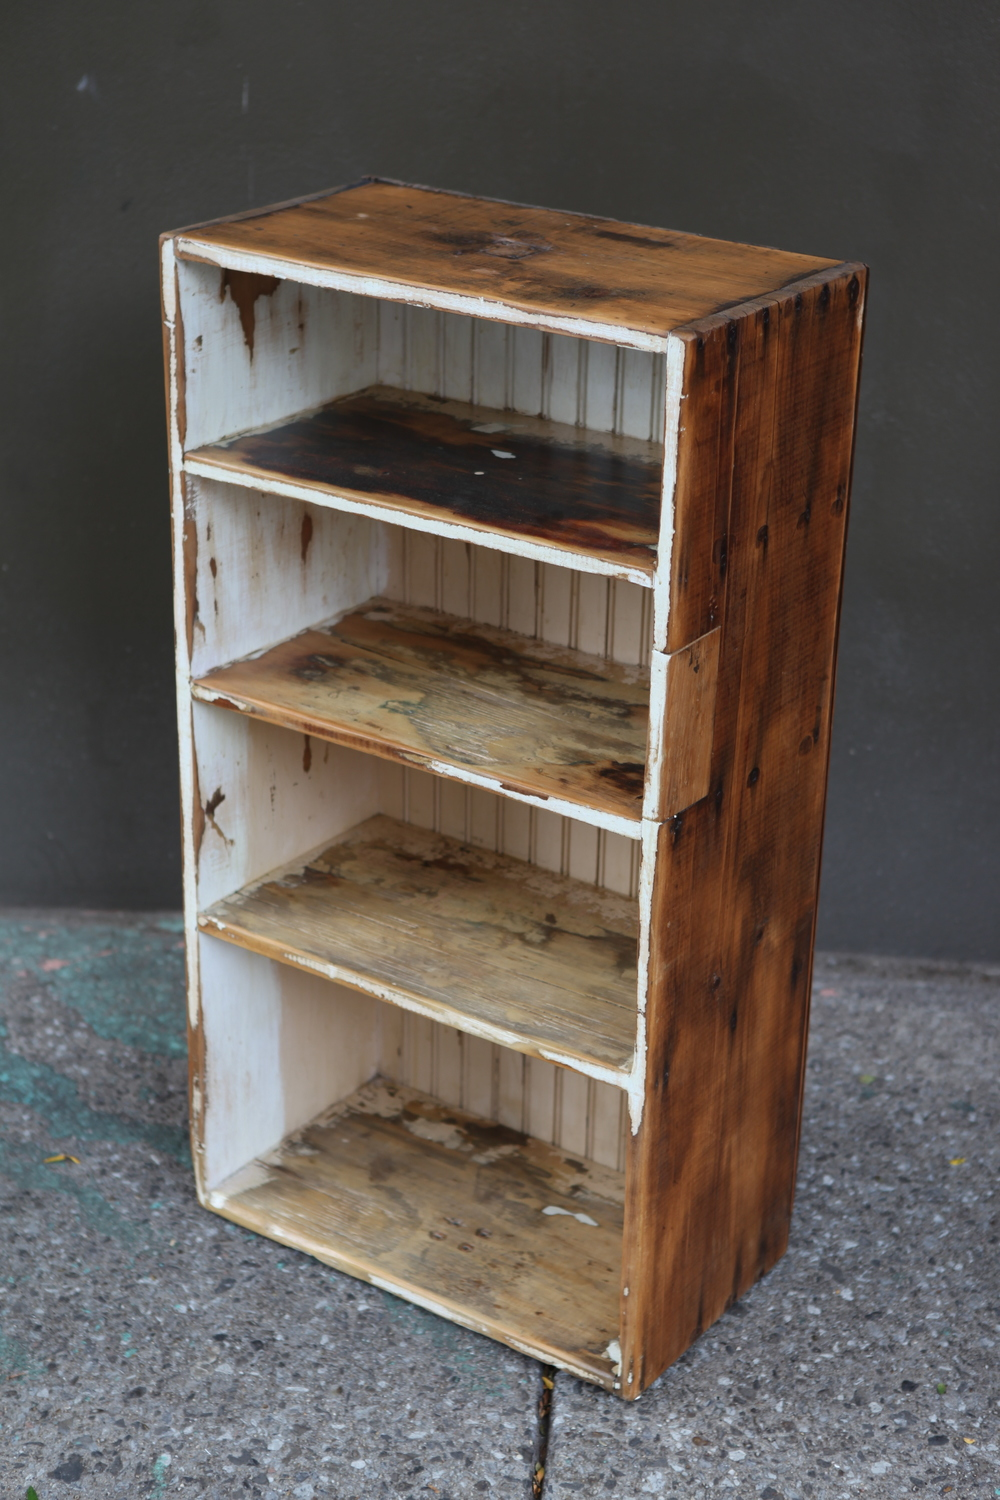 sold ! Primitive Wood Book Shelf $150